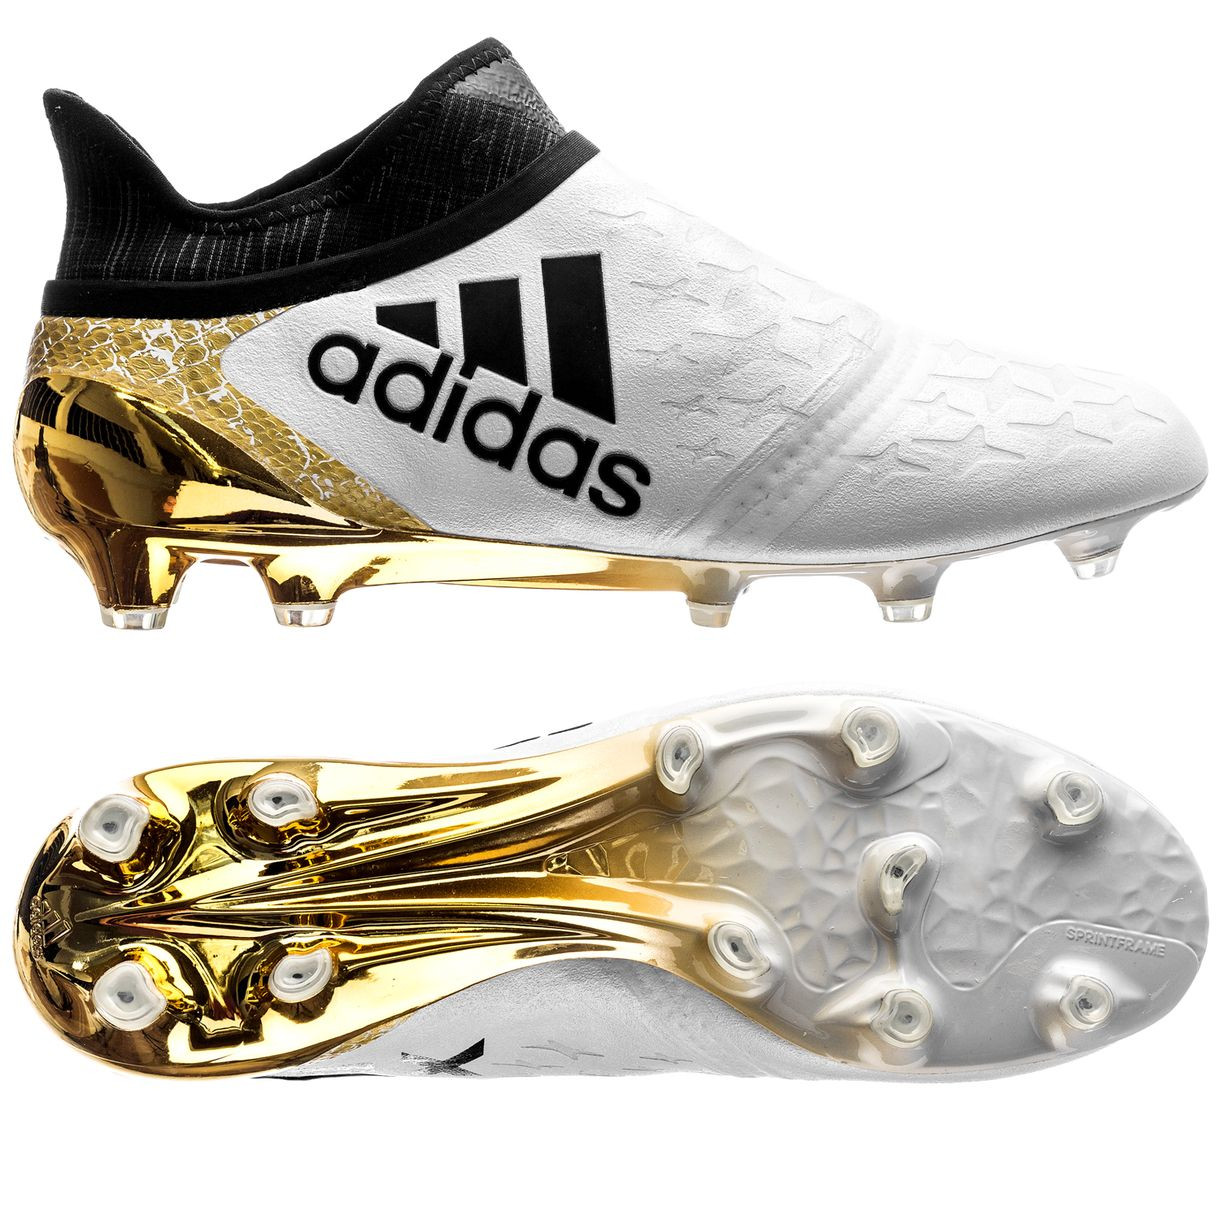 Adidas Ace  Purecontrol Champagne Shoes